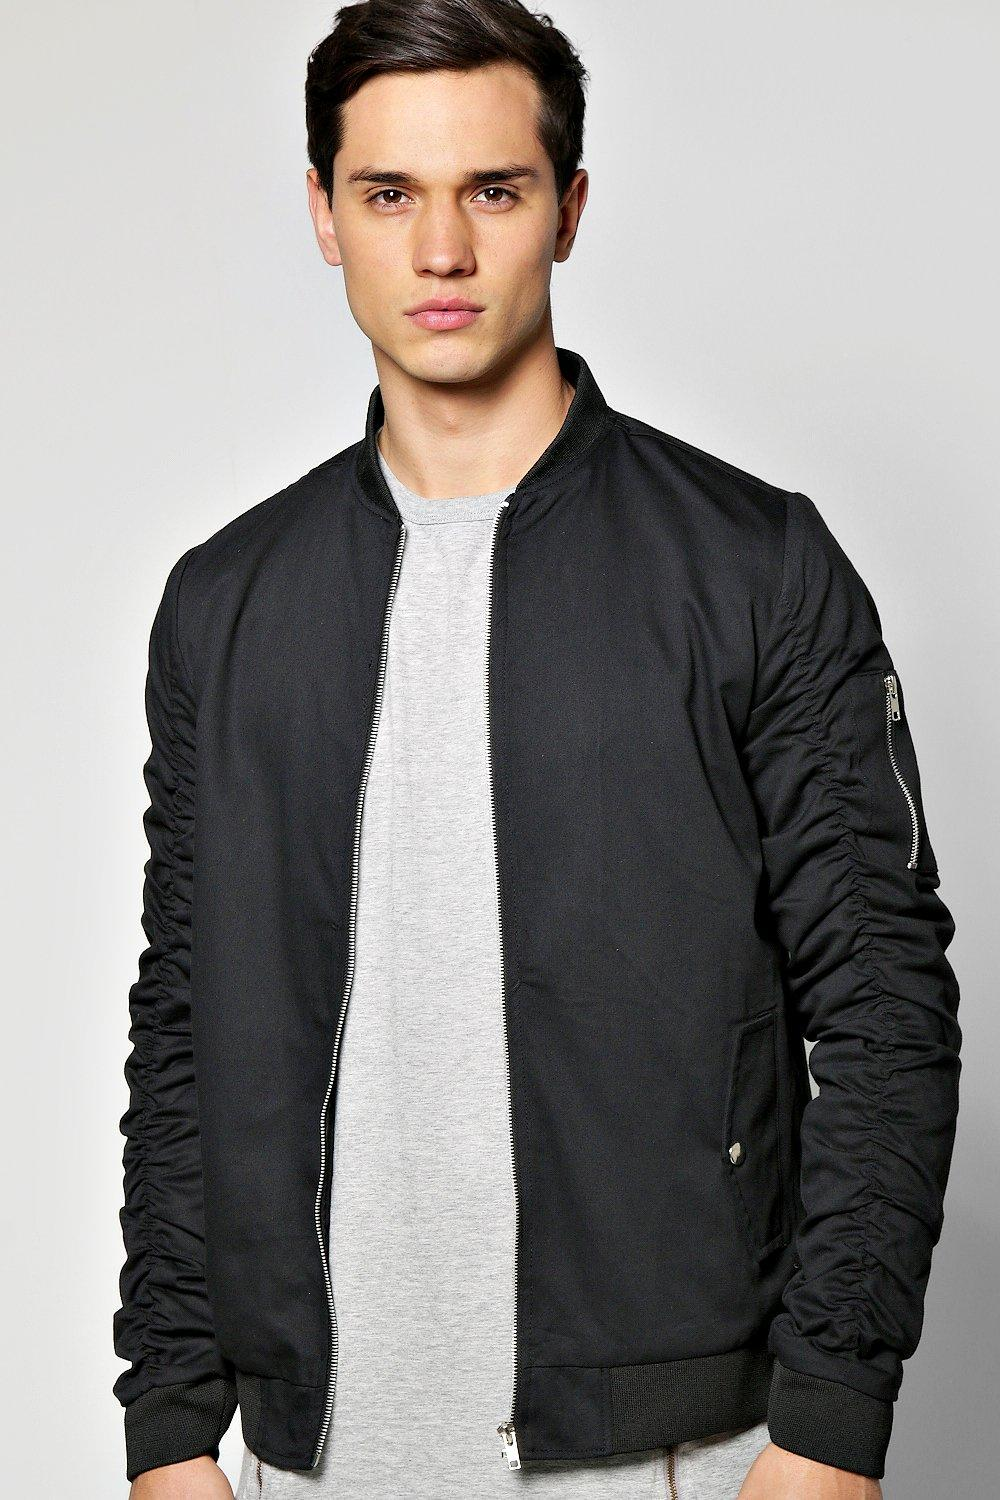 Men's Air Force A-2 Leather Flight Bomber Jacket. A best pick for a classic leather version that's well made.